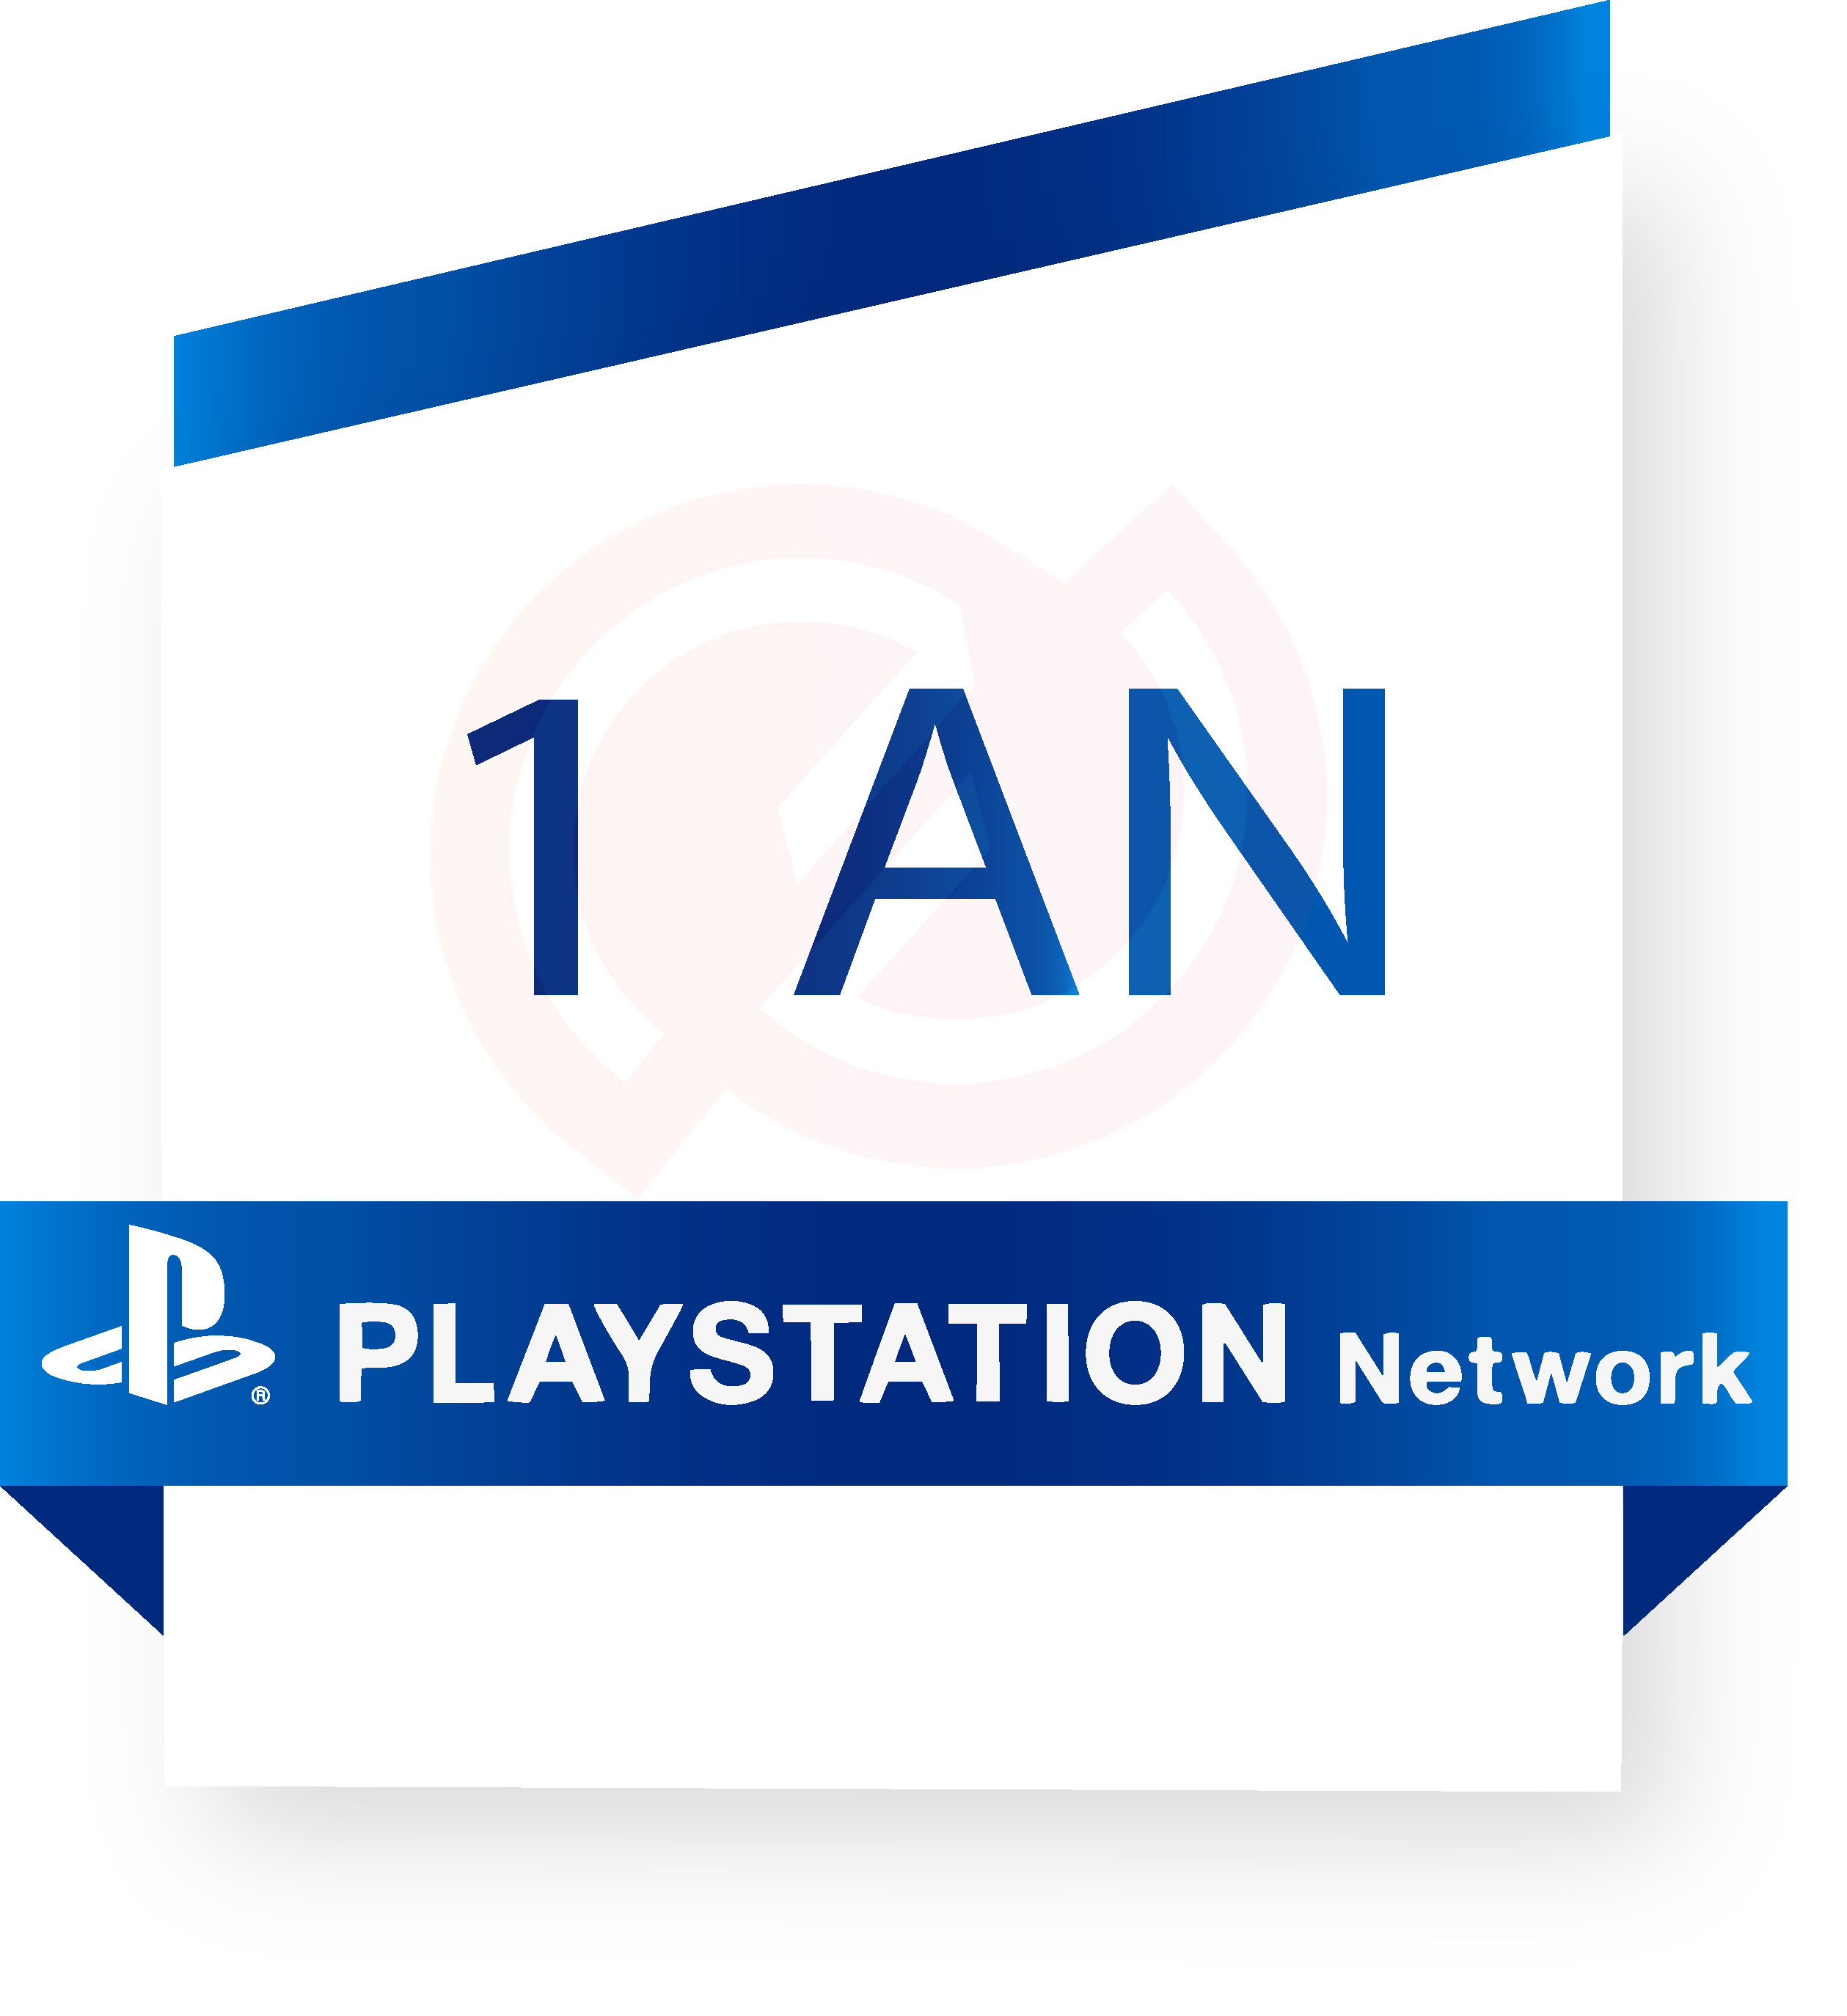 playstation-plus-1-an